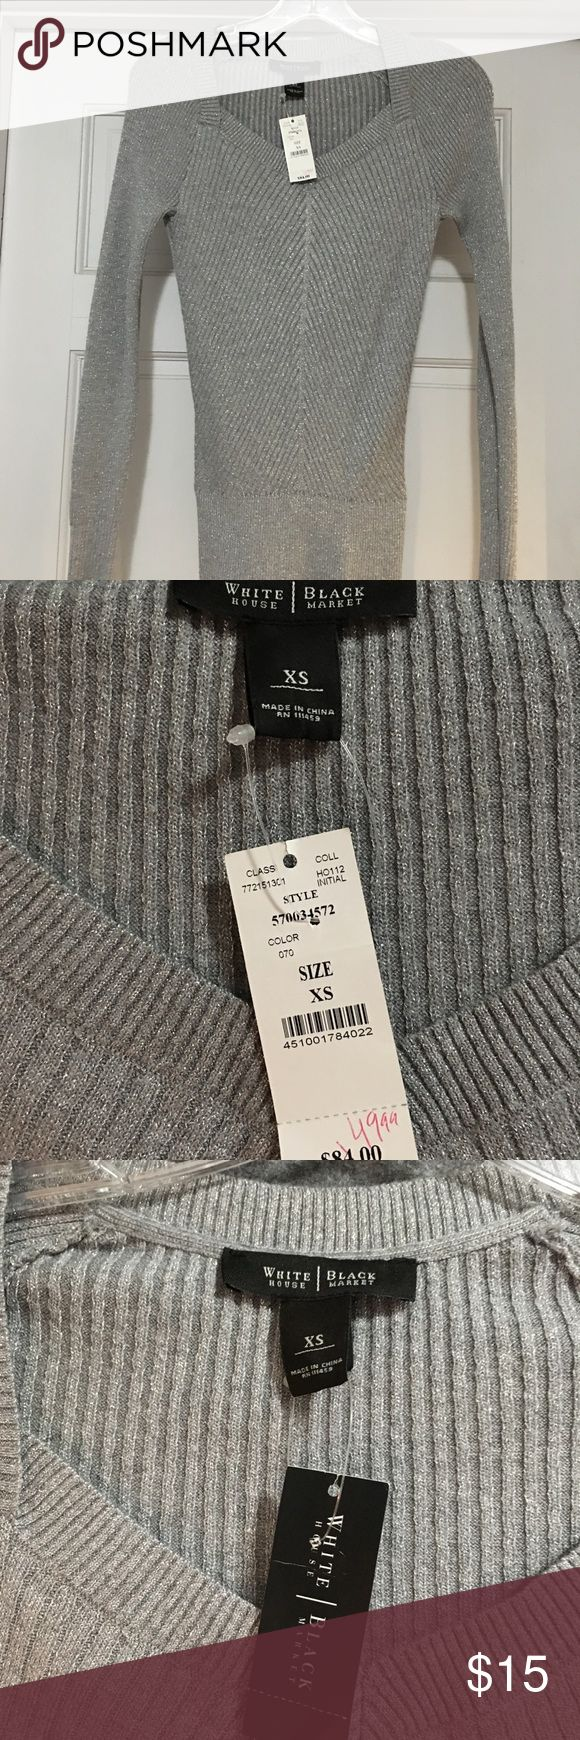 ❤️❤️BRAND NEW WITH TAGS WHBM SILVER SWEATER XS❤️❤️ Oh my!!!  This is AMAZING!!! Brand New with tags--White House Black Market sparkling lightweight sweater!!! Size XS. PRICED TO SELL QUICKLY!!!  Bundle bundle bundle for additional savings!!! White House Black Market Sweaters V-Necks